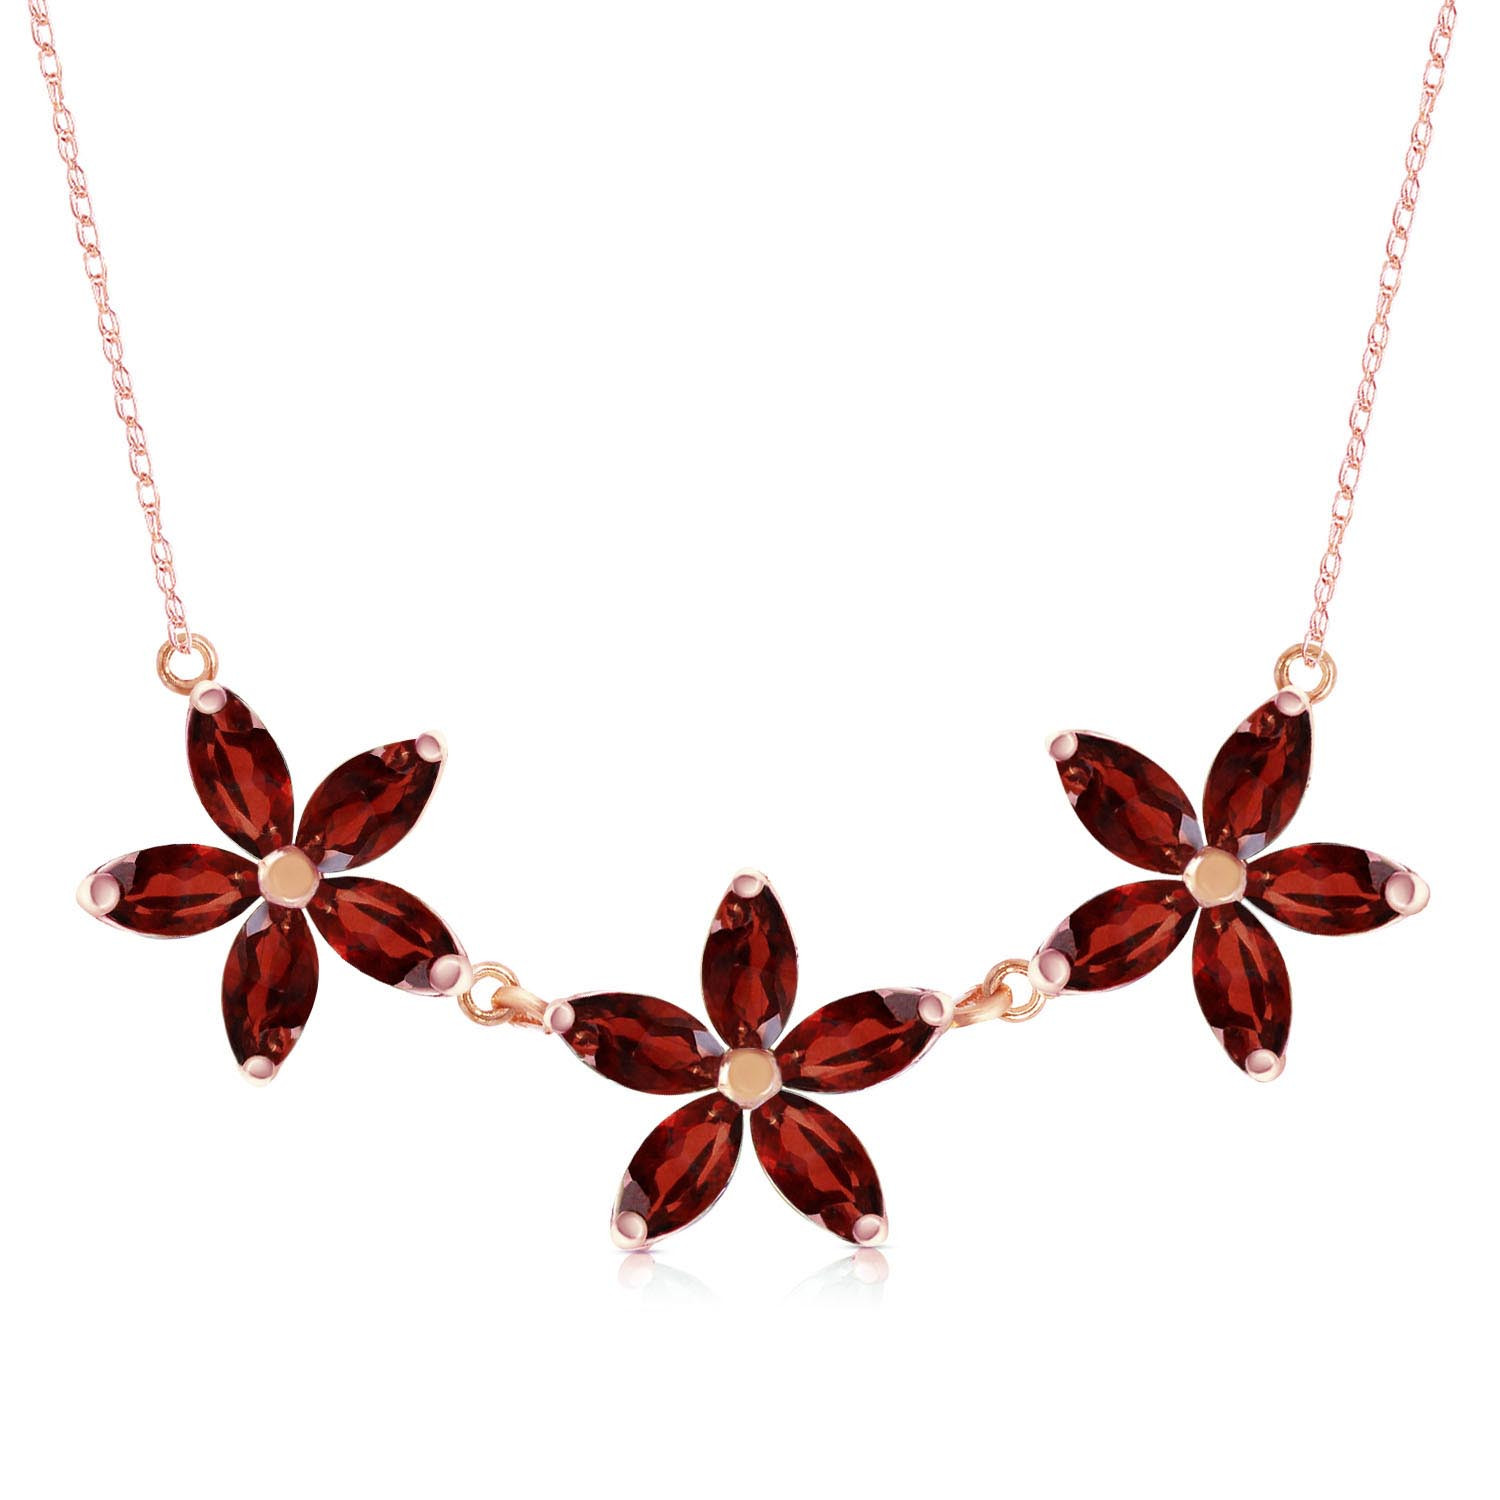 Marquise Cut Garnet Pendant Necklace 4.2 ctw in 9ct Rose Gold